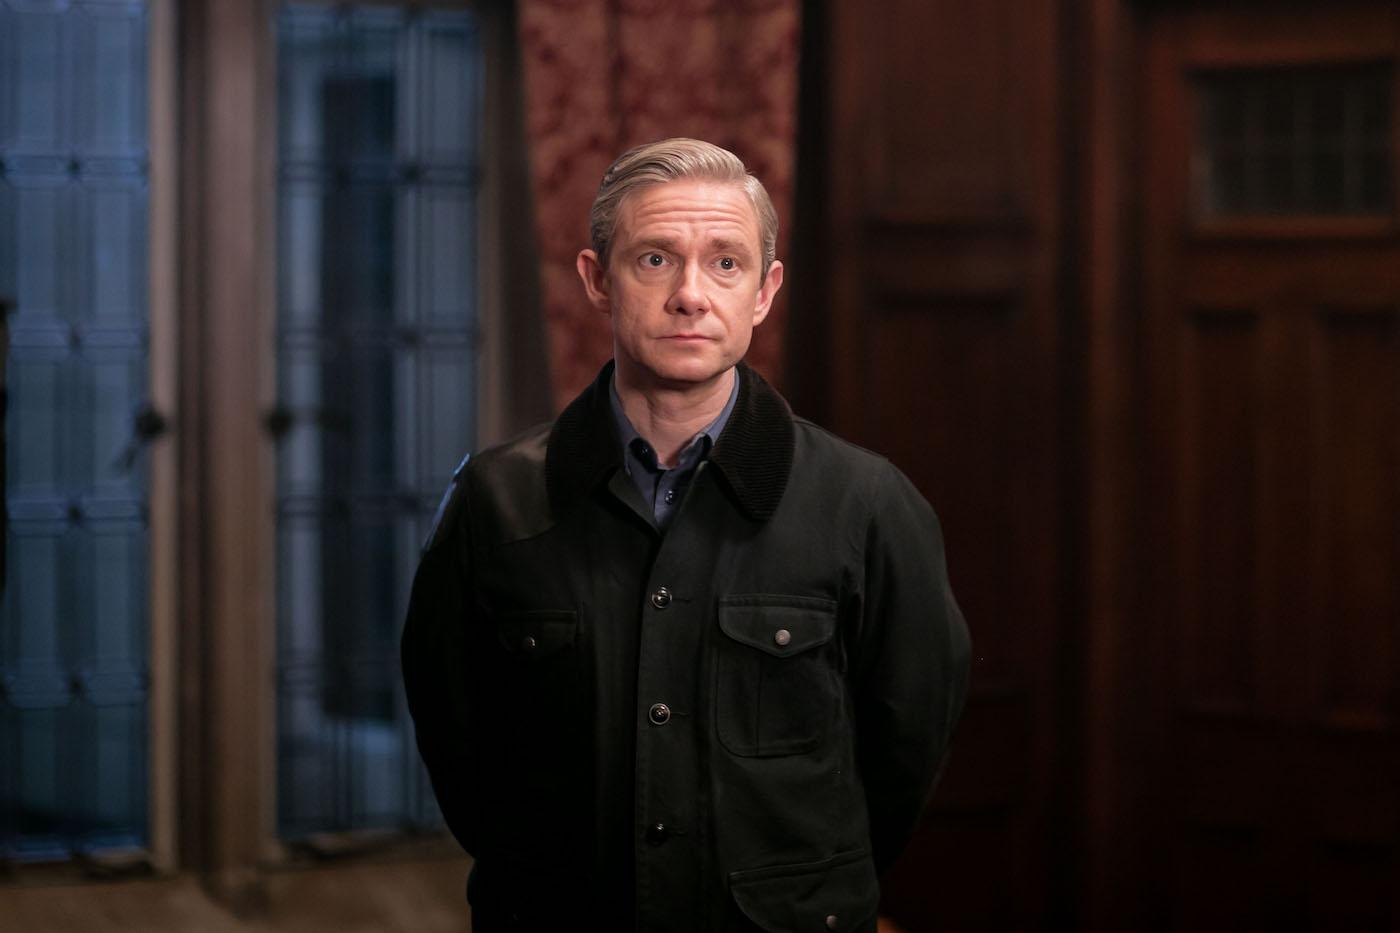 John Watson, the emotional ballast to Sherlock's cool reason, which would lead to terrible consequences if unchecked: see Eurus. (Laurence Cendrowicz/Hartswood Films & MASTERPIECE)